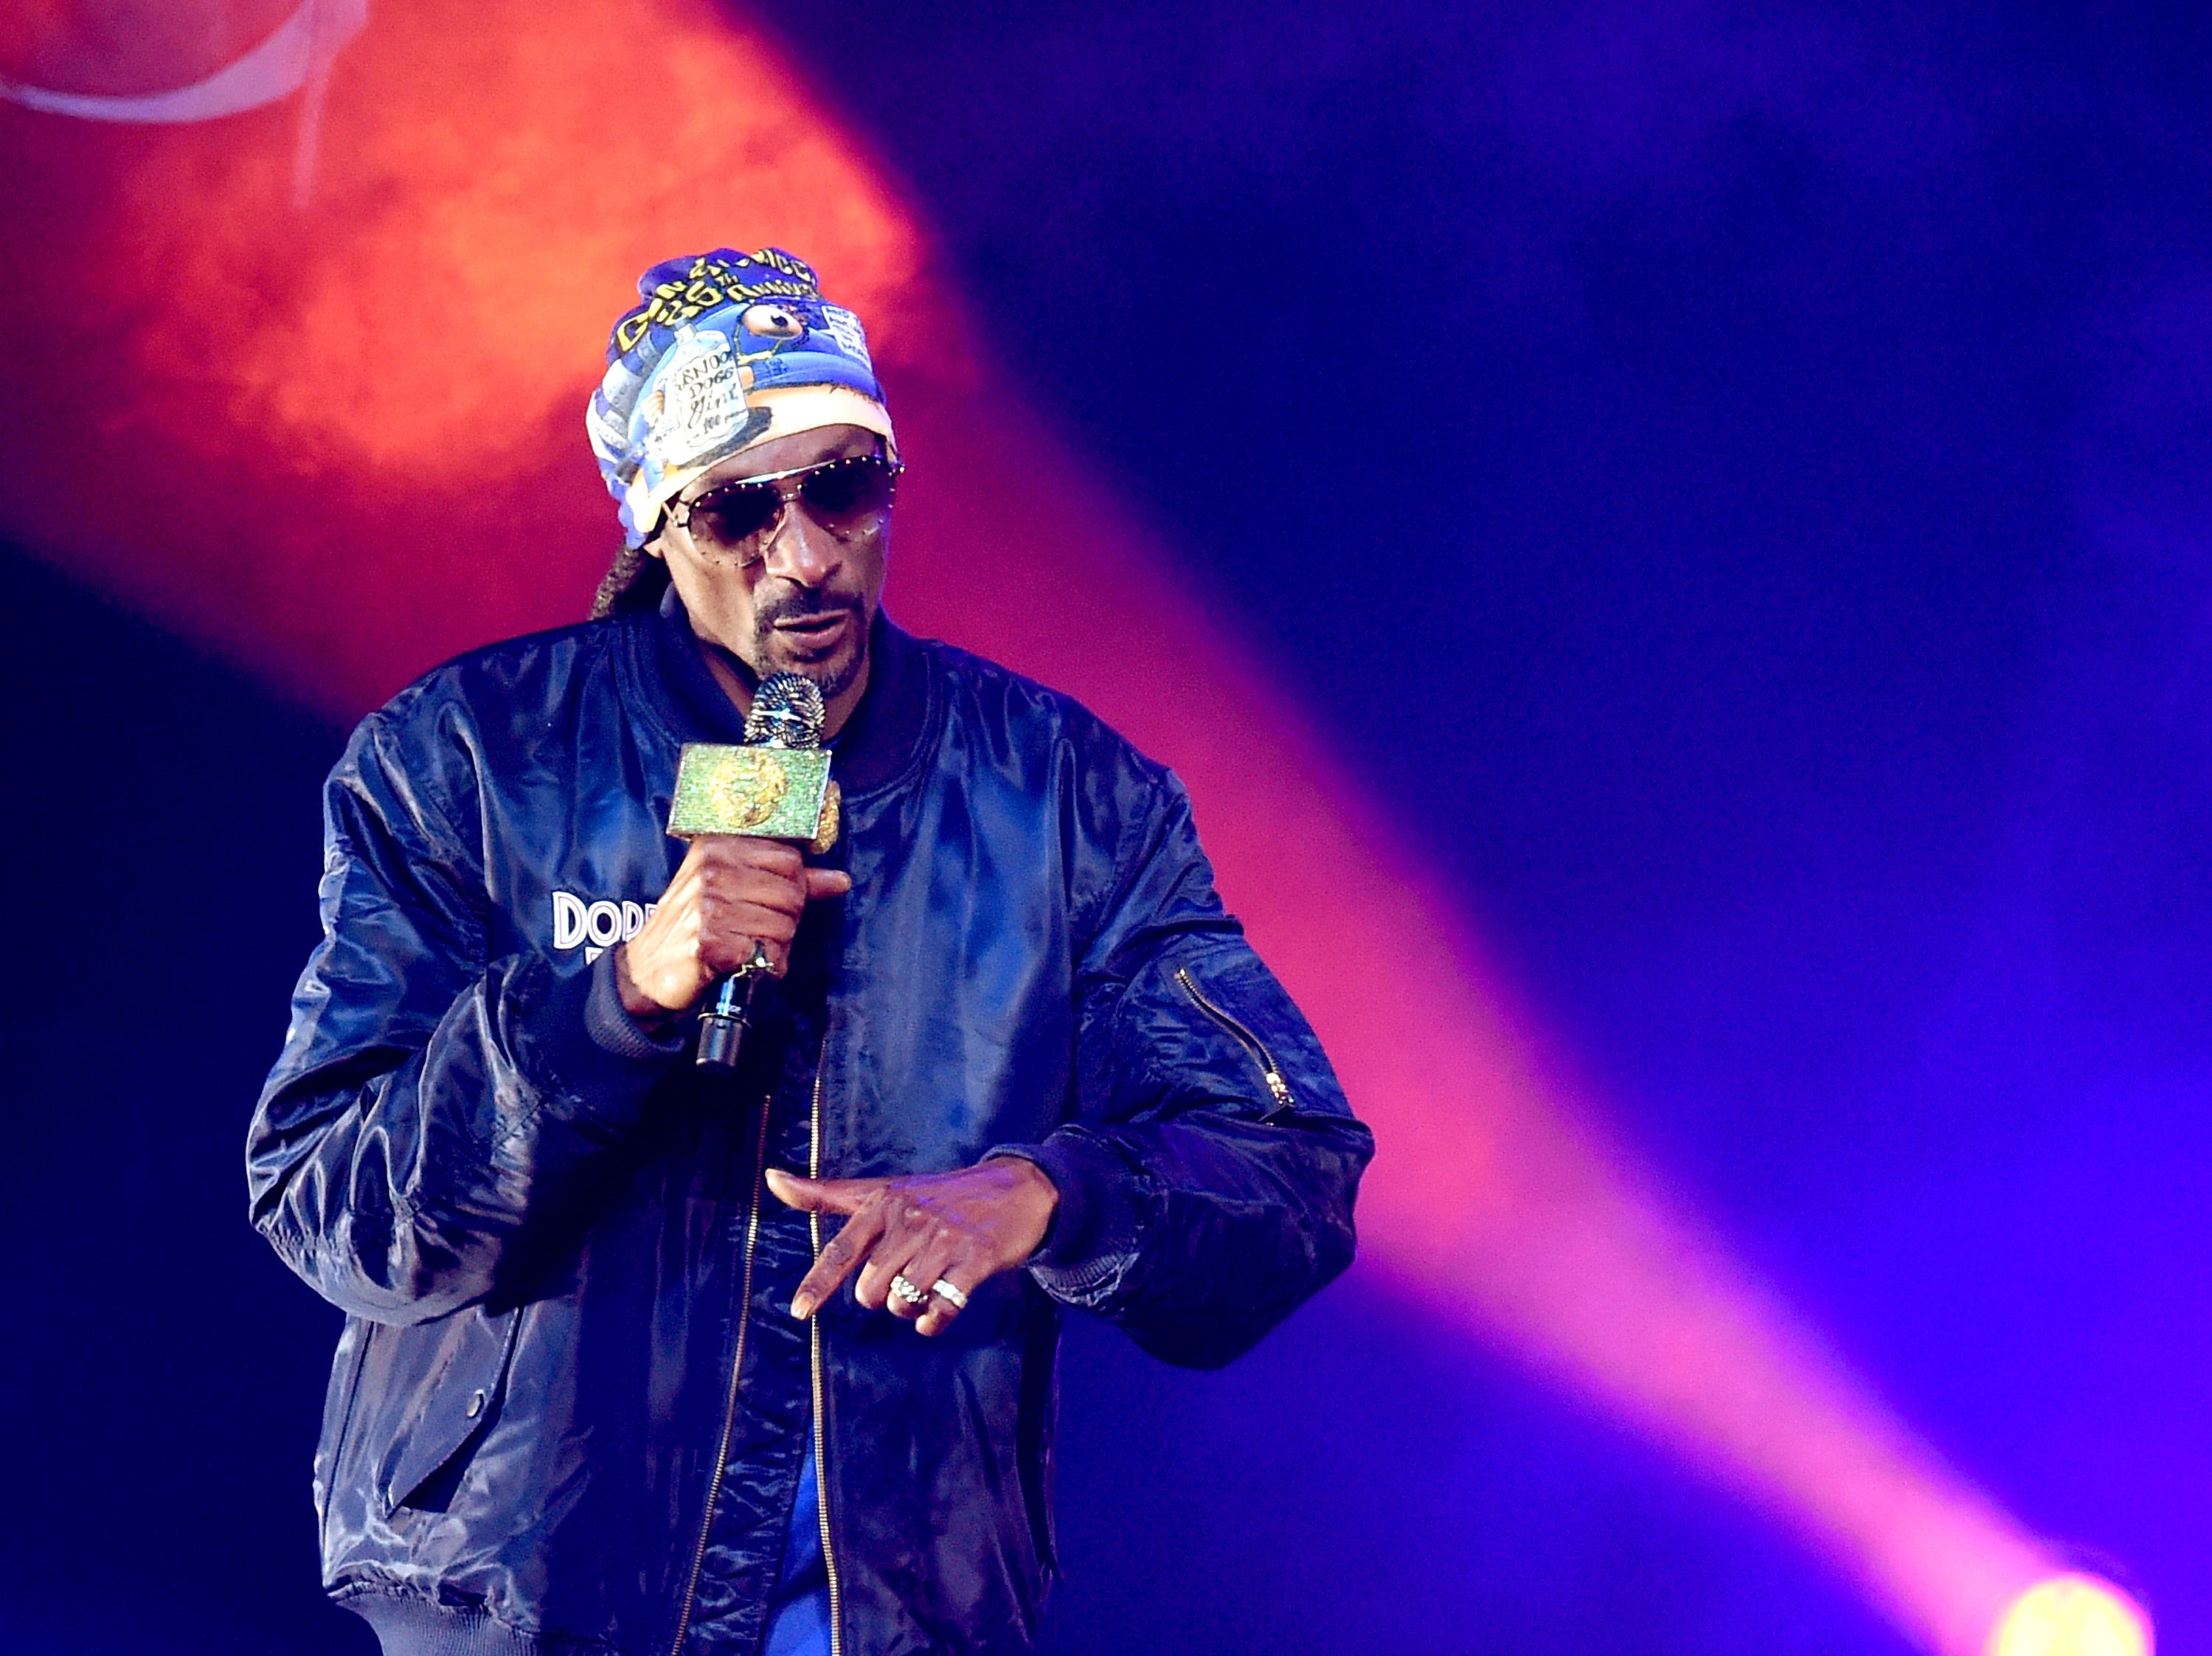 LOS ANGELES, CA - DECEMBER 15:  Snoop Dogg performs at the Puff Puff Pass Tour 3 at the Microsoft Theatre on December 15, 2018 in Los Angeles, California.  (Photo by Kevin Winter/Getty Images) ORG XMIT: 775261086 ORIG FILE ID: 1074047526